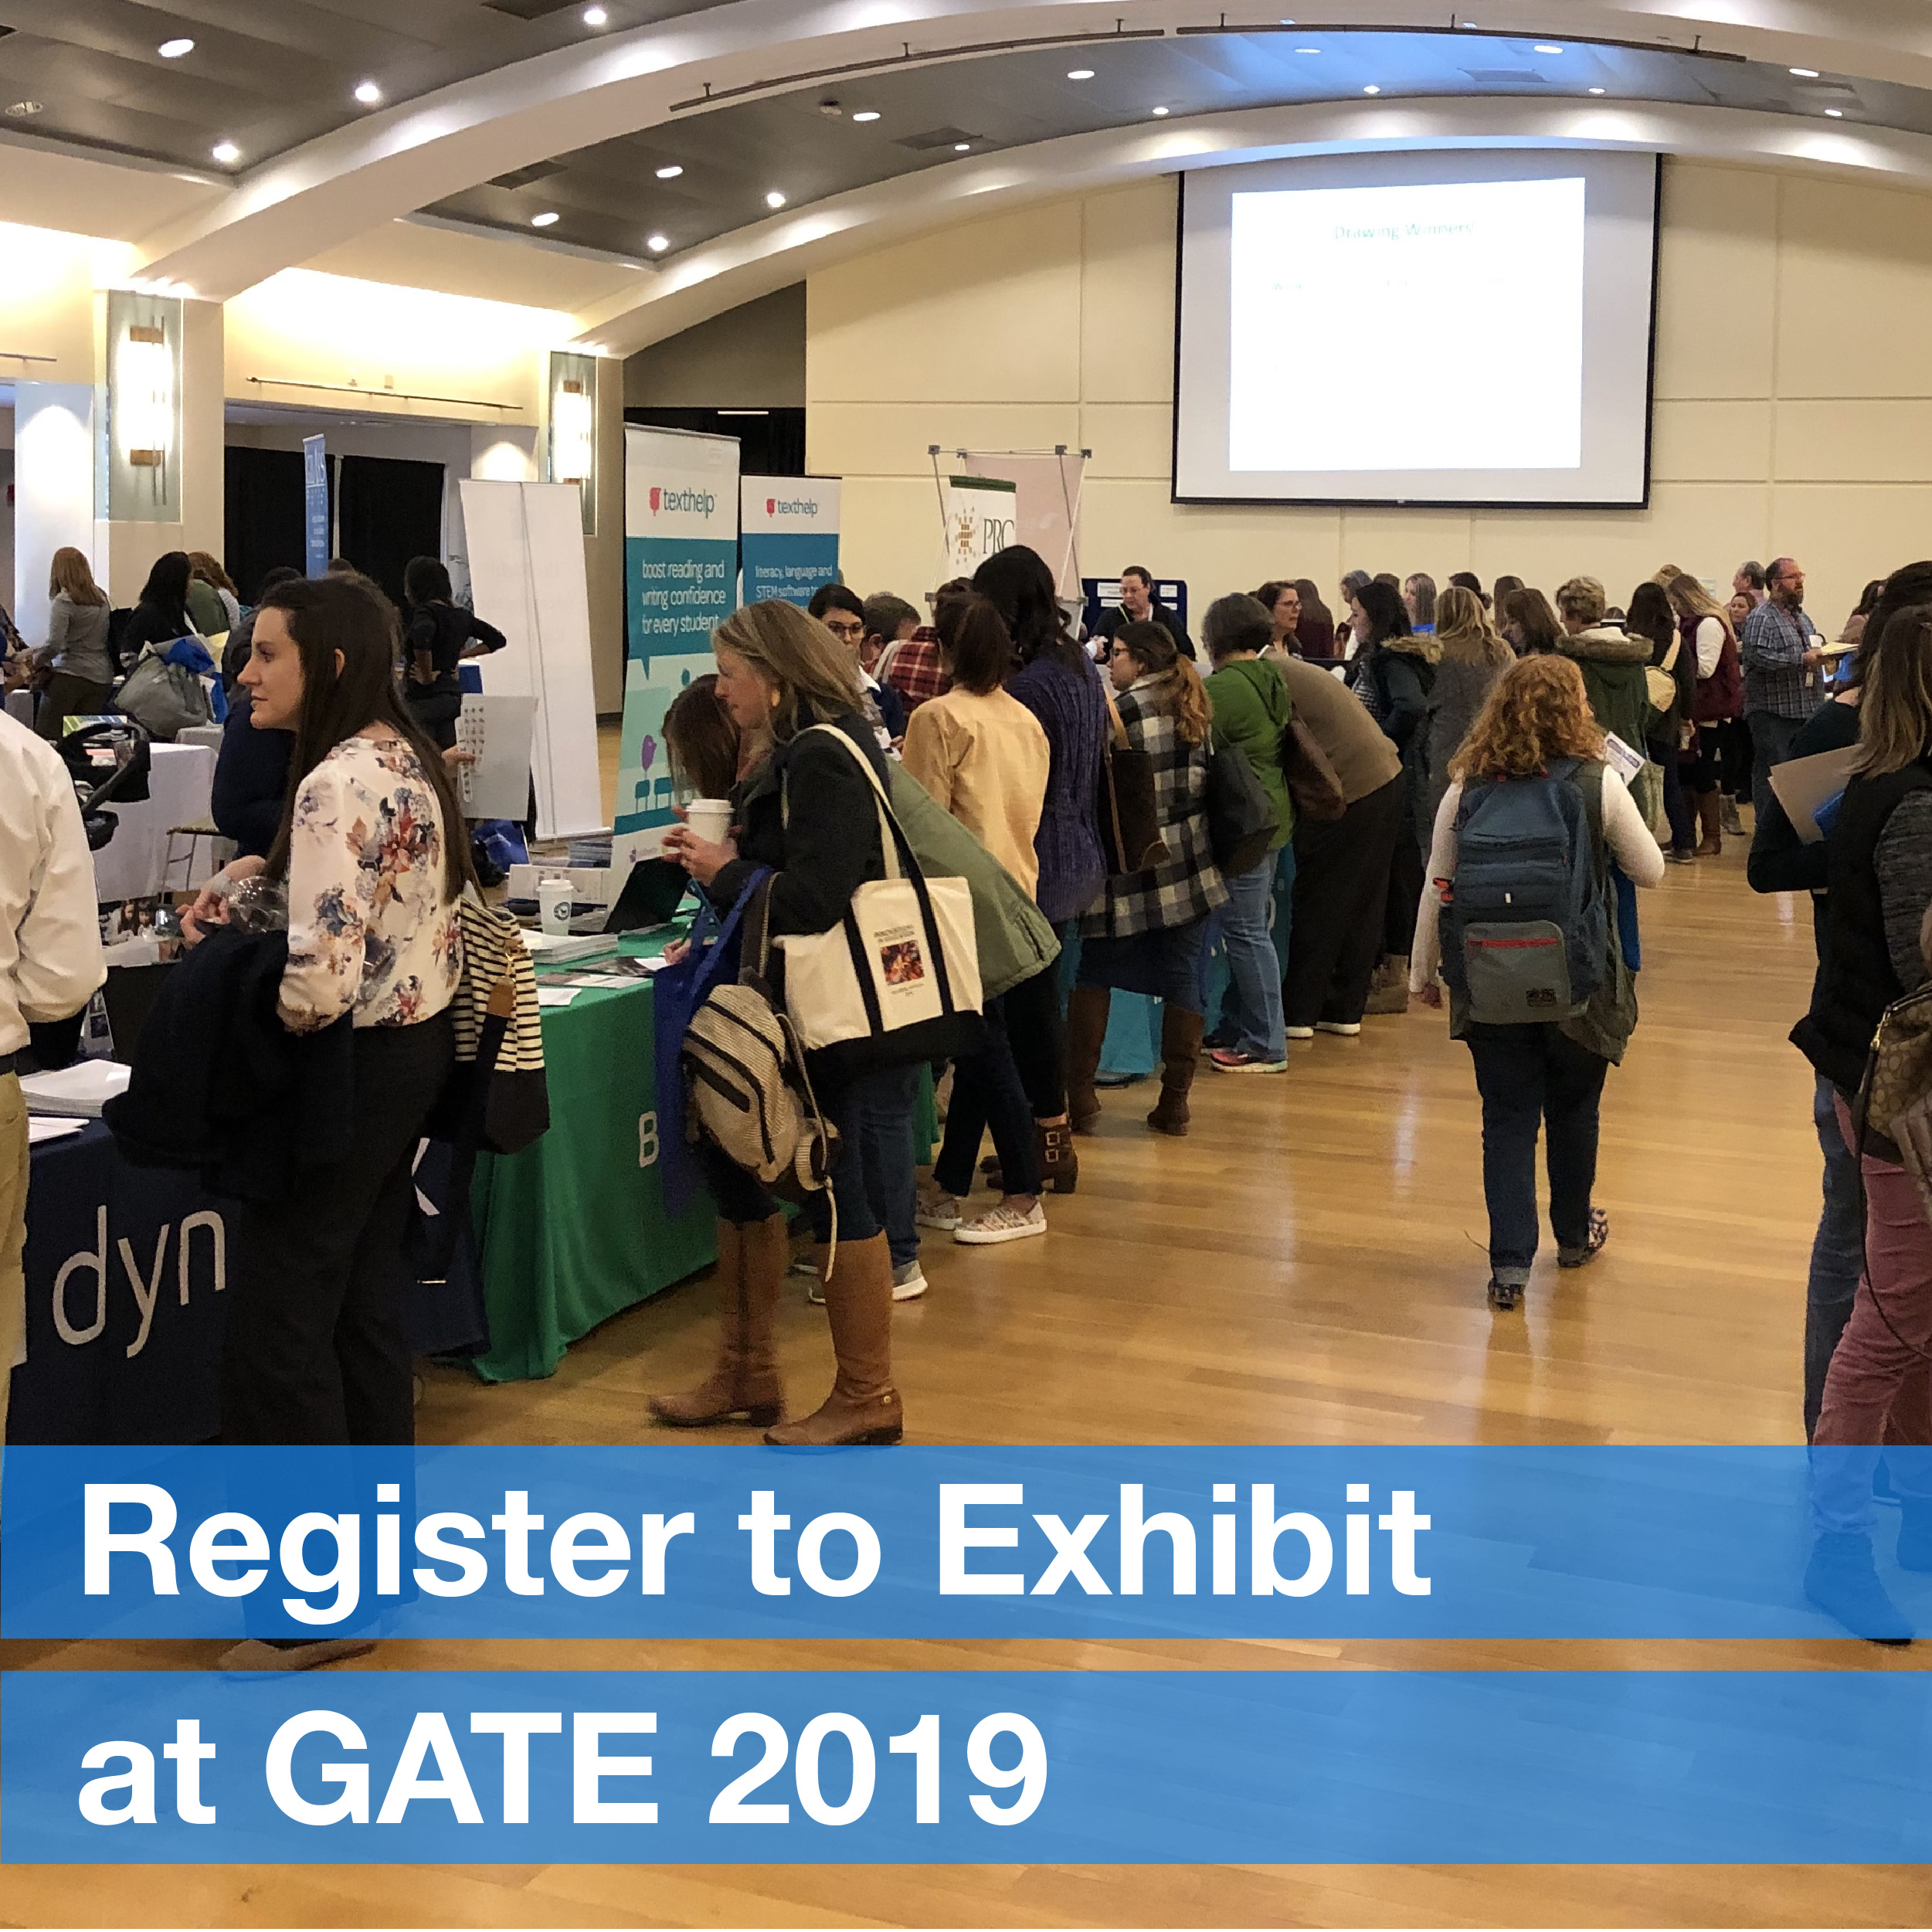 A large room with exhibit booths and people walking around interacting with one another. There is text on the image that reads: Register to exhibit at GATE 2019